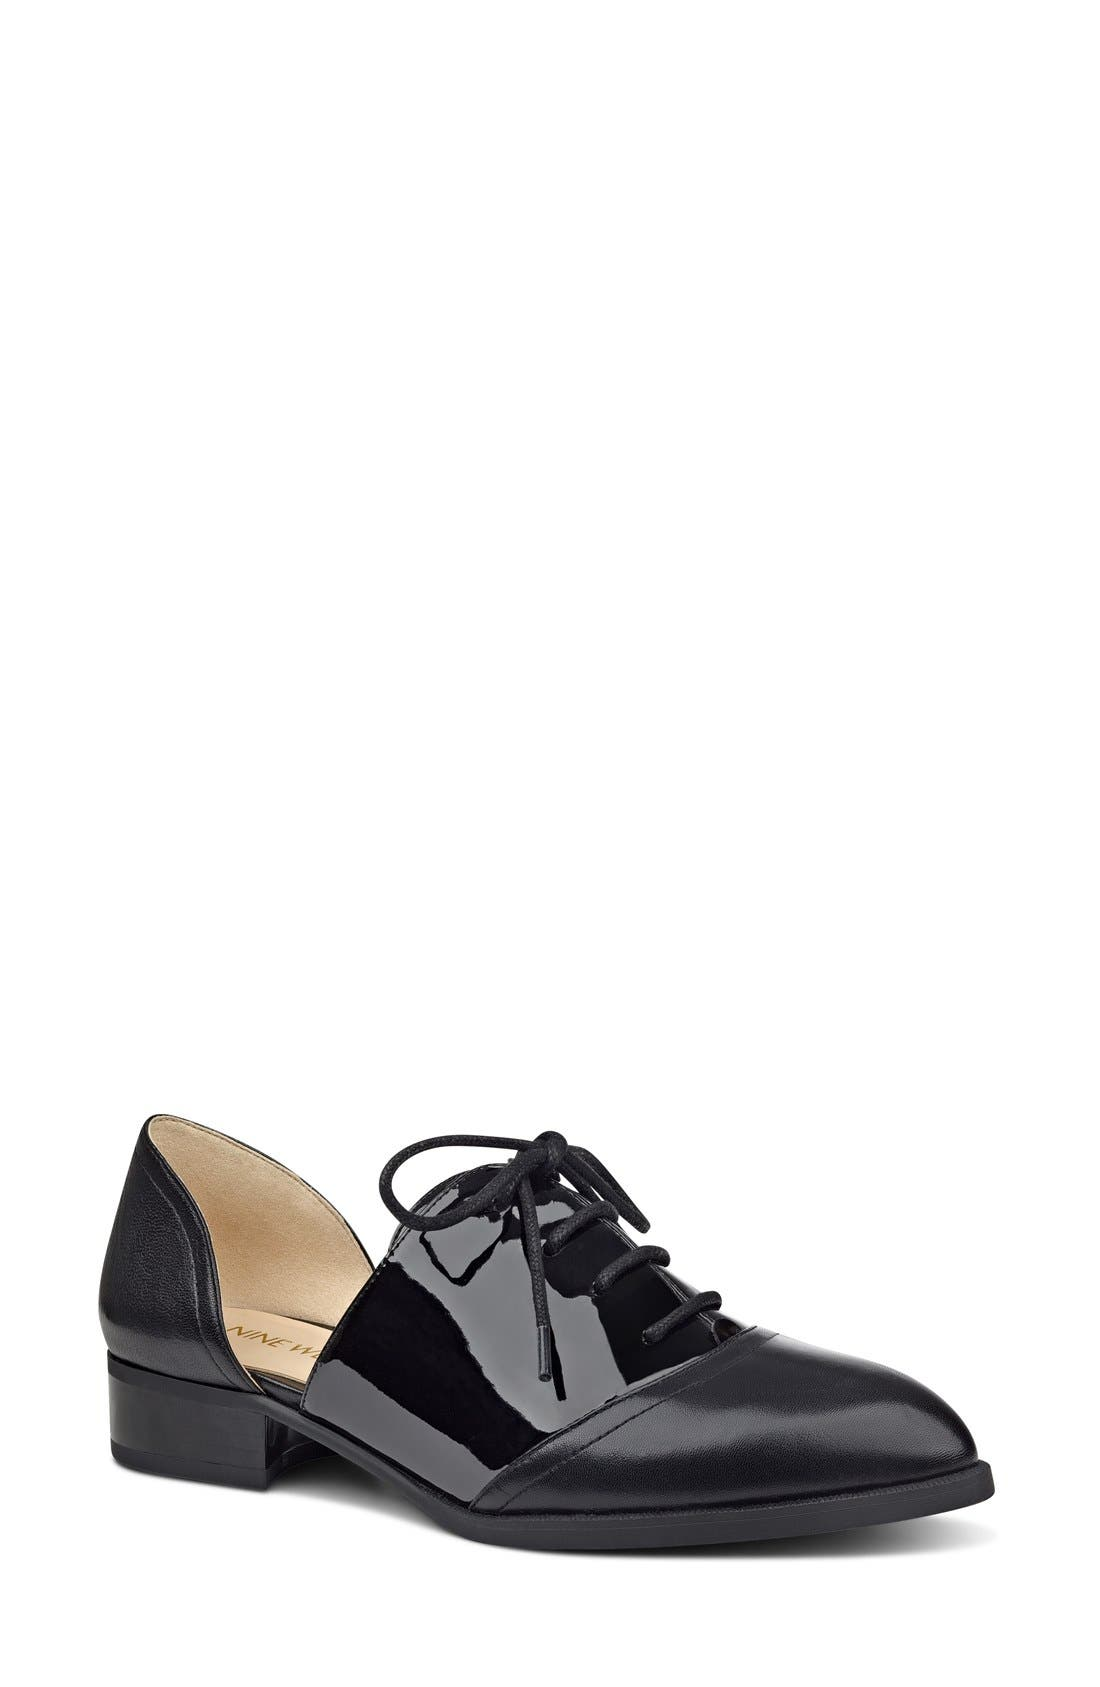 Main Image - Nine West 'Nevie' d'Orsay Oxford (Women)